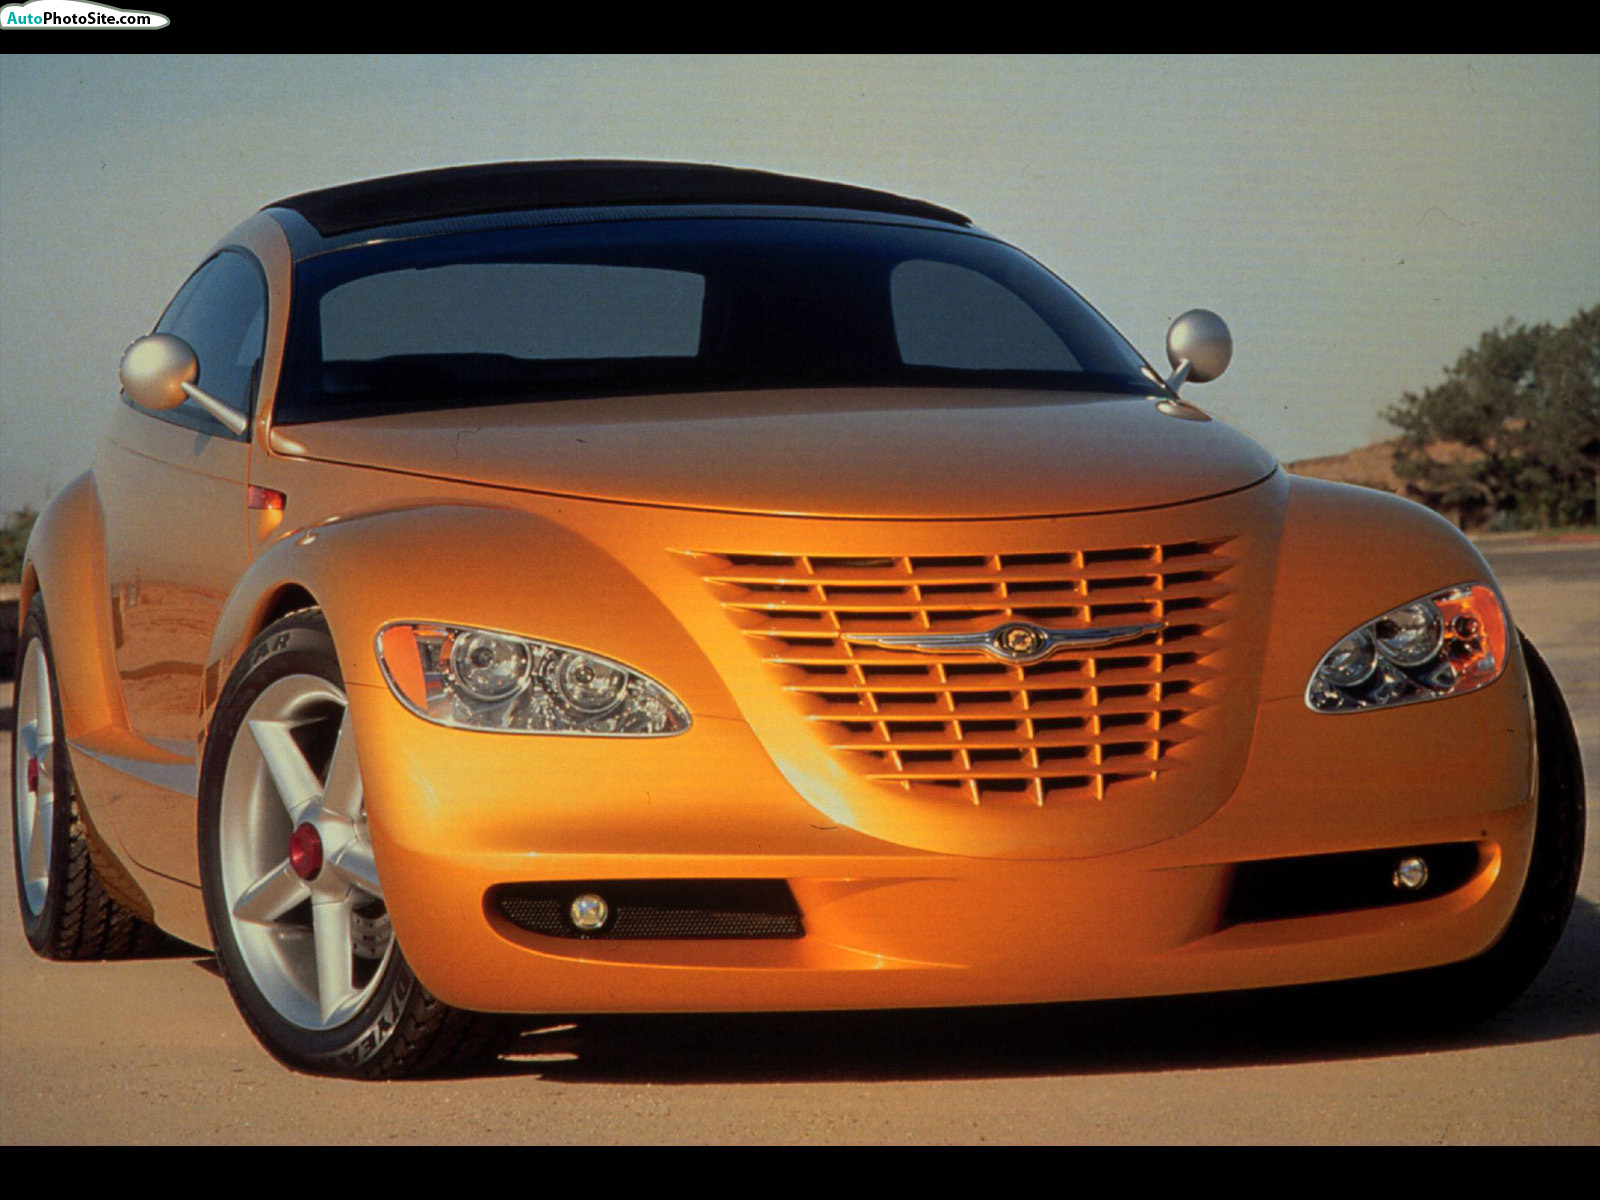 Chrysler pronto photo - 2